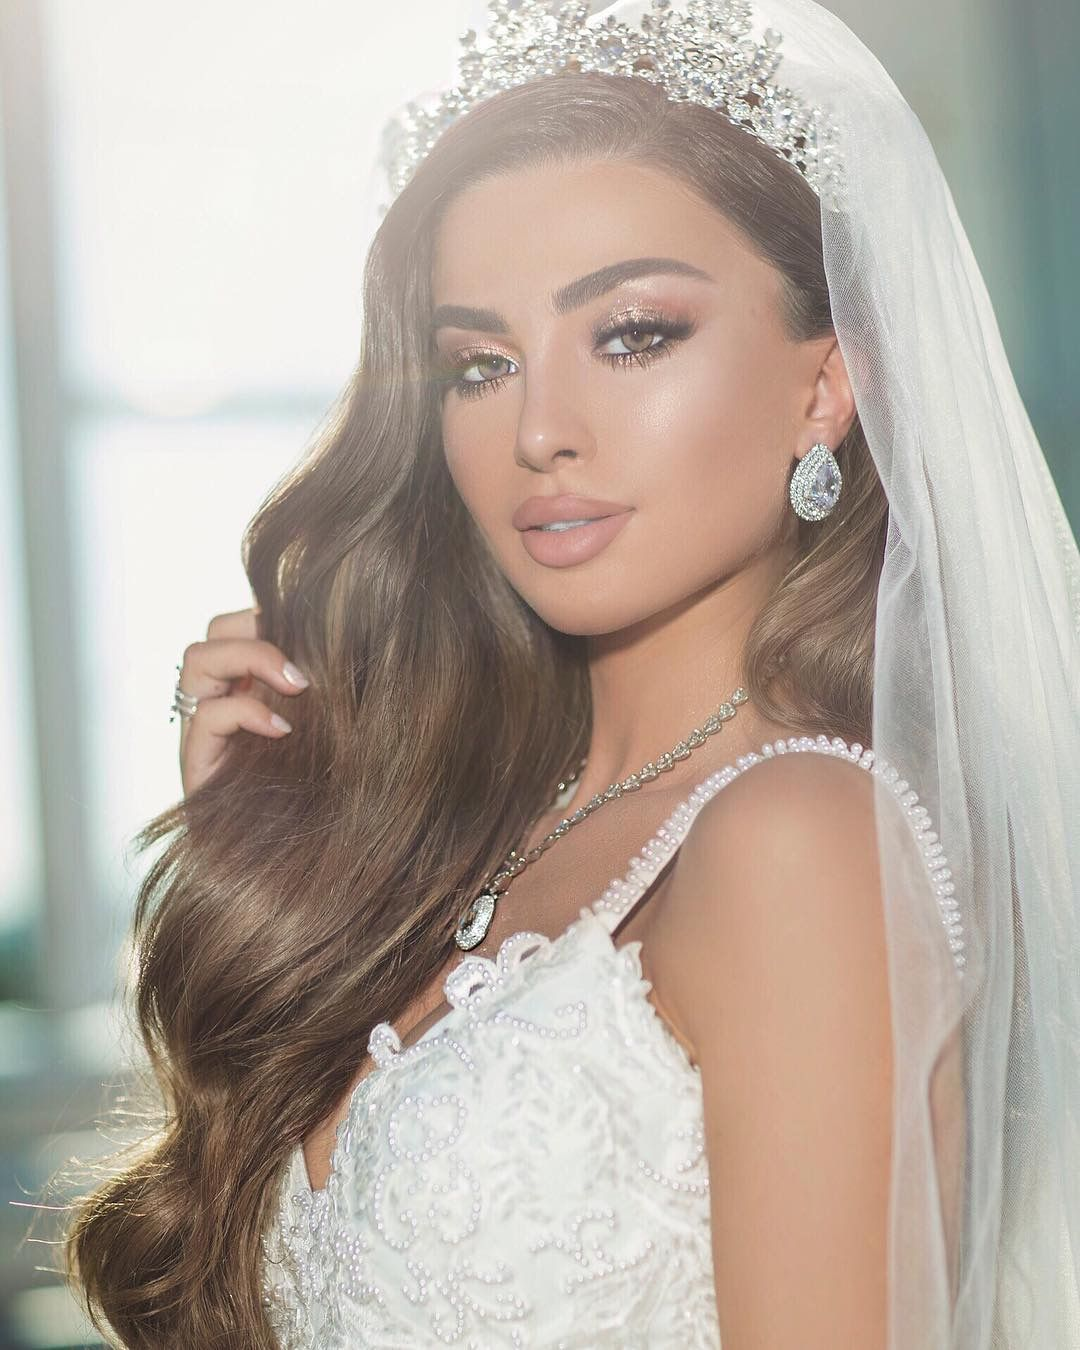 Wedding Hairstyle With Veil: Bride Hairstyles With Veil